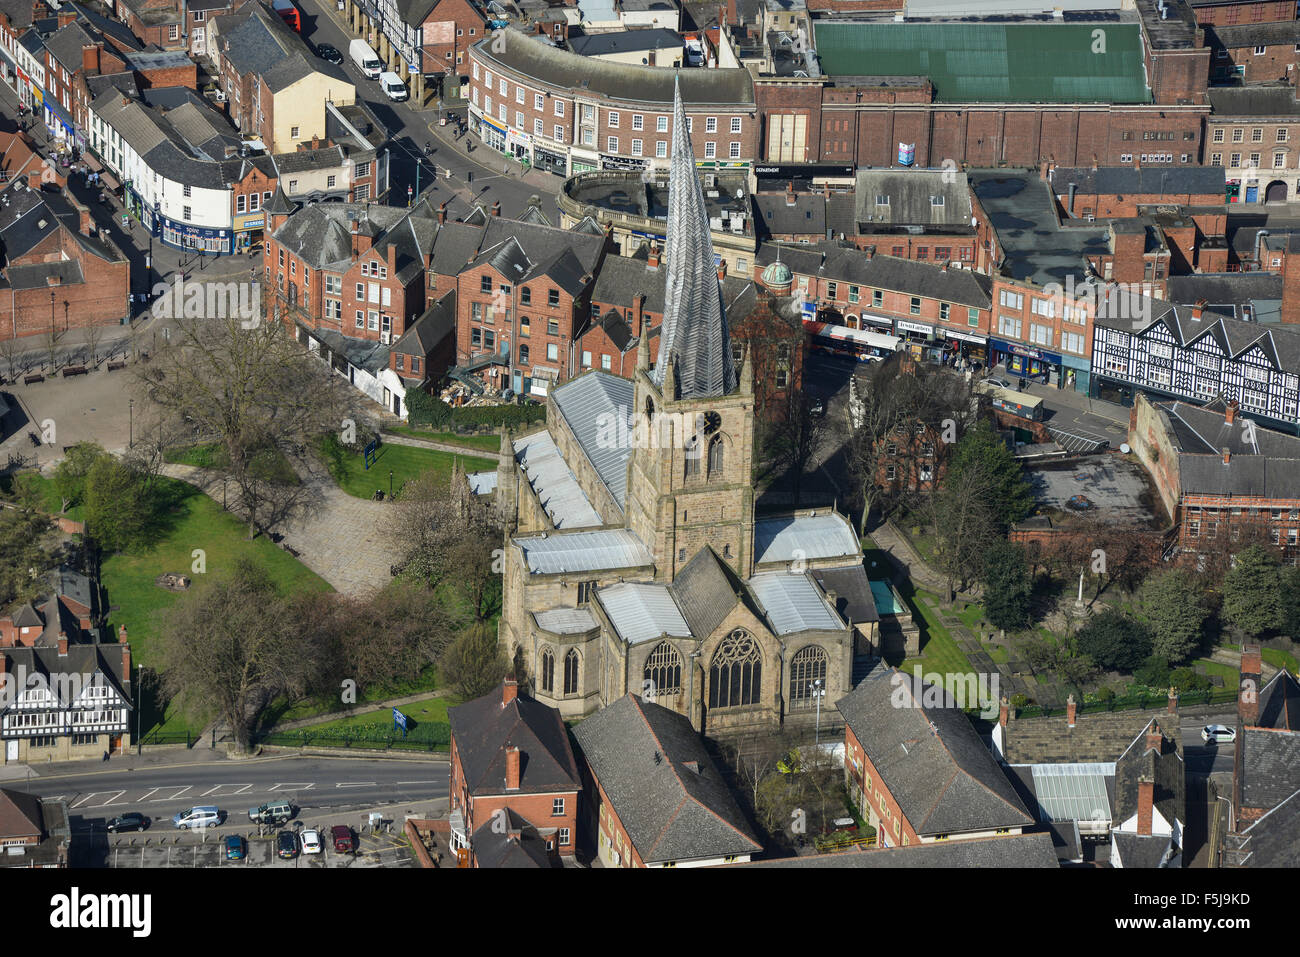 An aerial view of the Church of St Mary and All Saints in Chesterfield, Derbyshire. The famous Crooked Spire - Stock Image